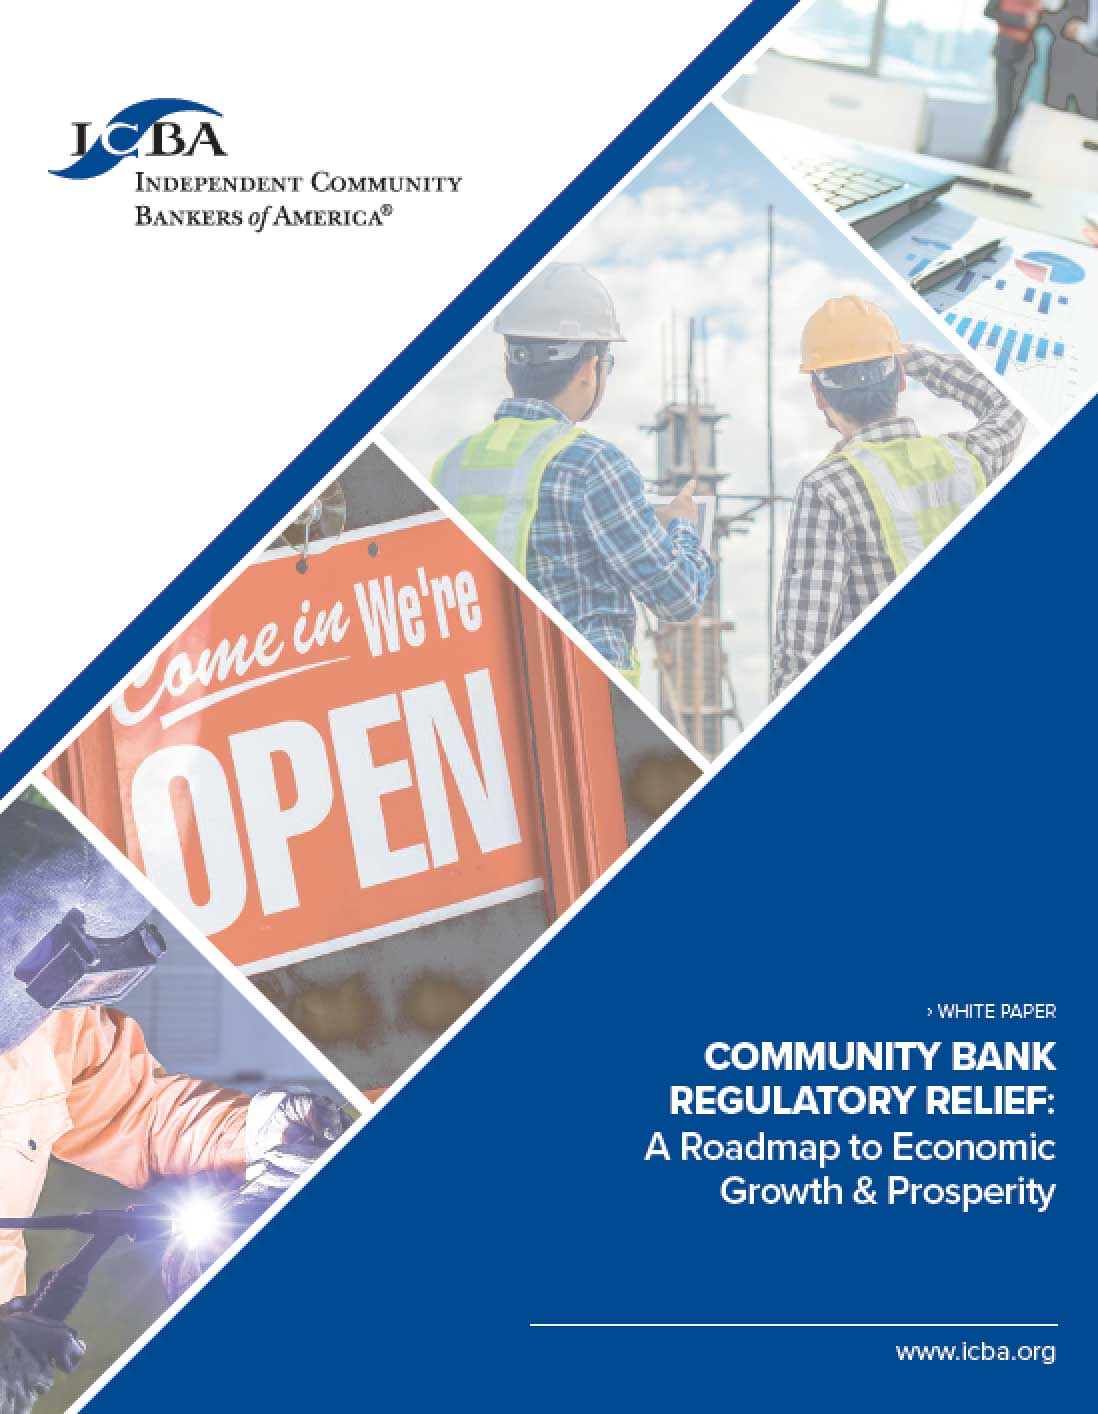 Community Bank Regulatory Relief: A Roadmap to Economic Growth & Prosperity